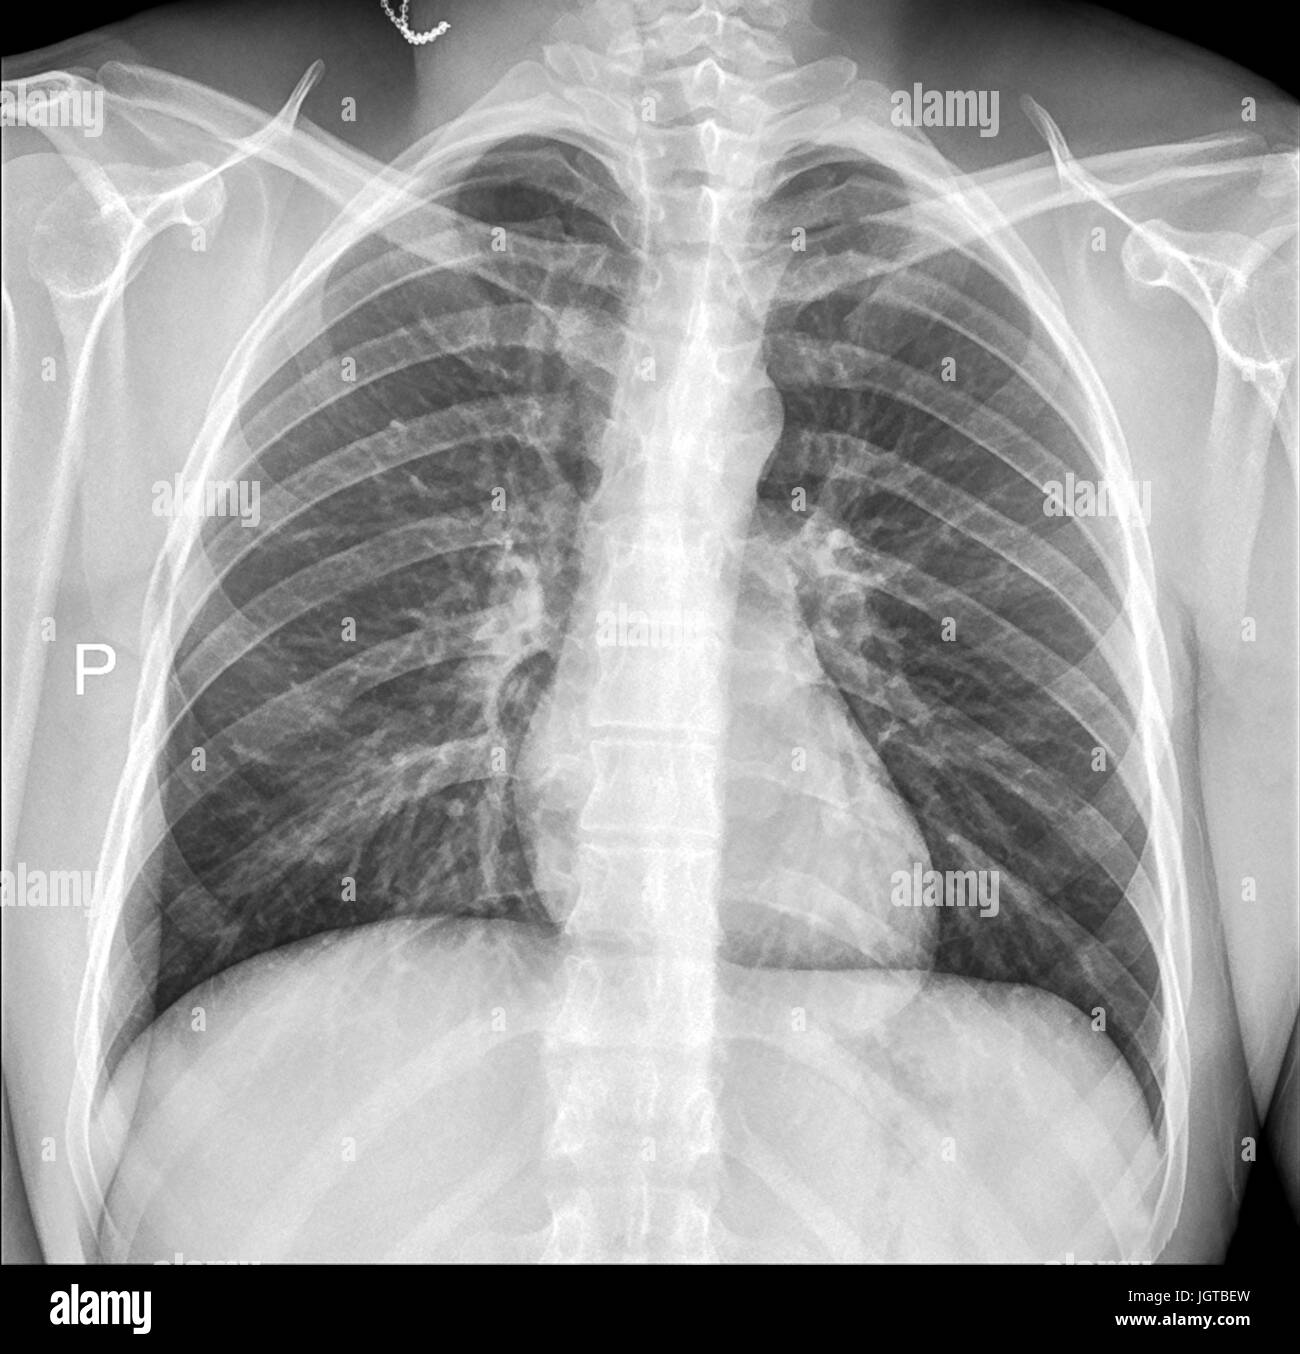 Chest Medical Xray Lungs And Heart View Patient